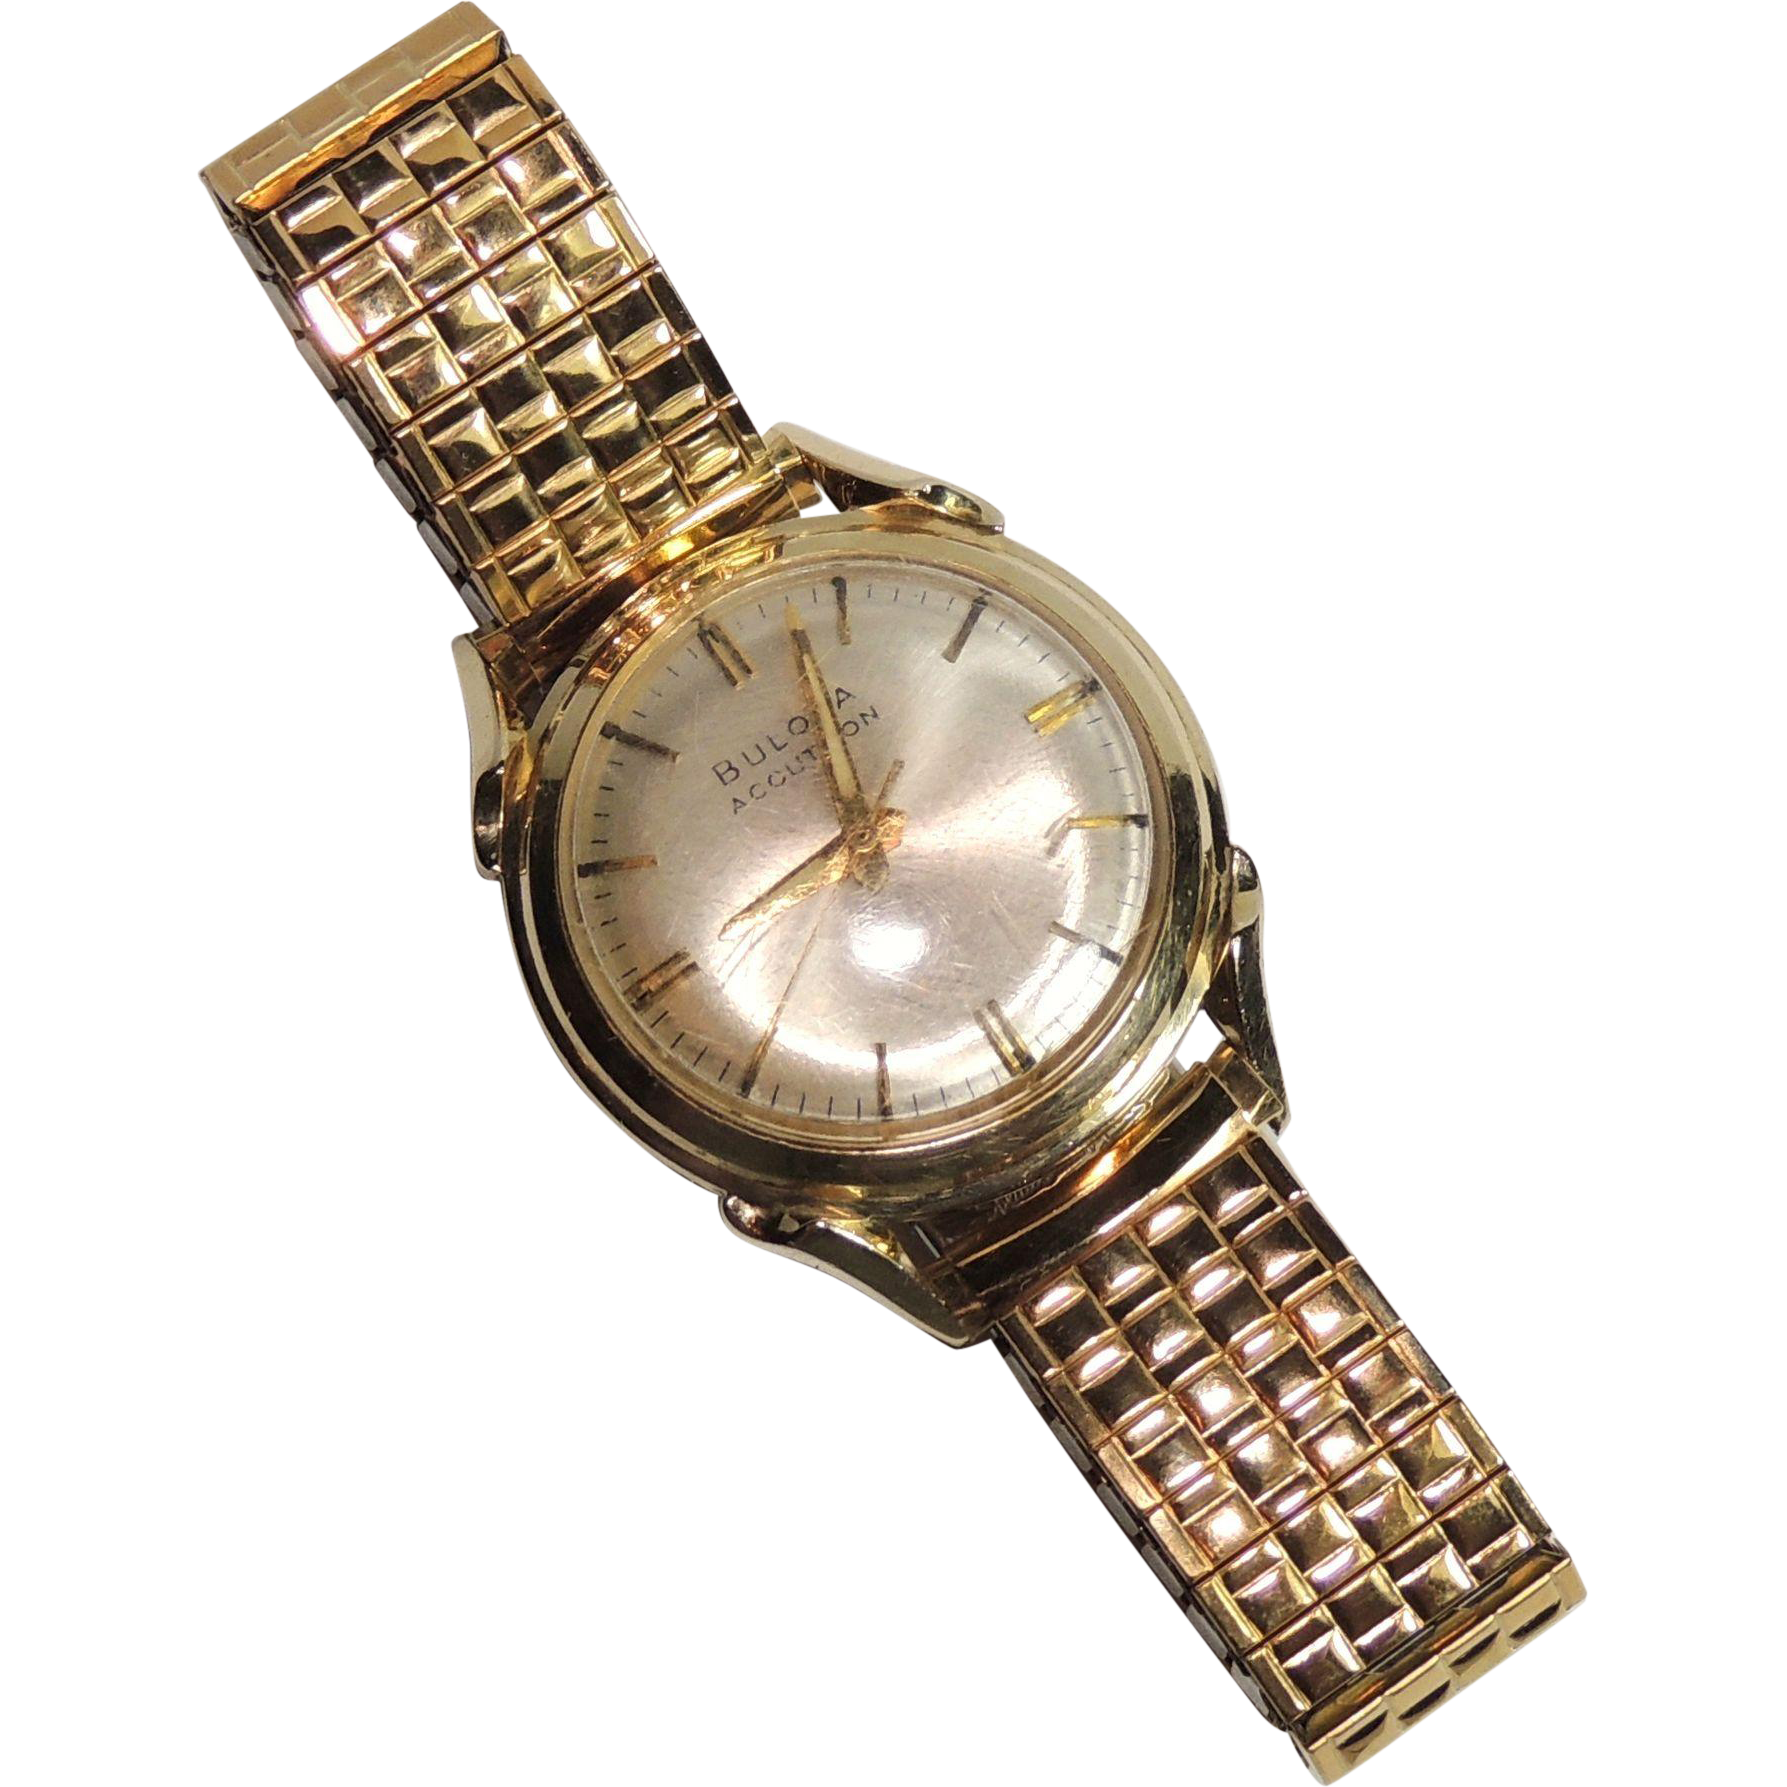 Solid 14k gold bulova accutron wrist watch men 39 s vintage for Best place to sell gold jewelry in chicago